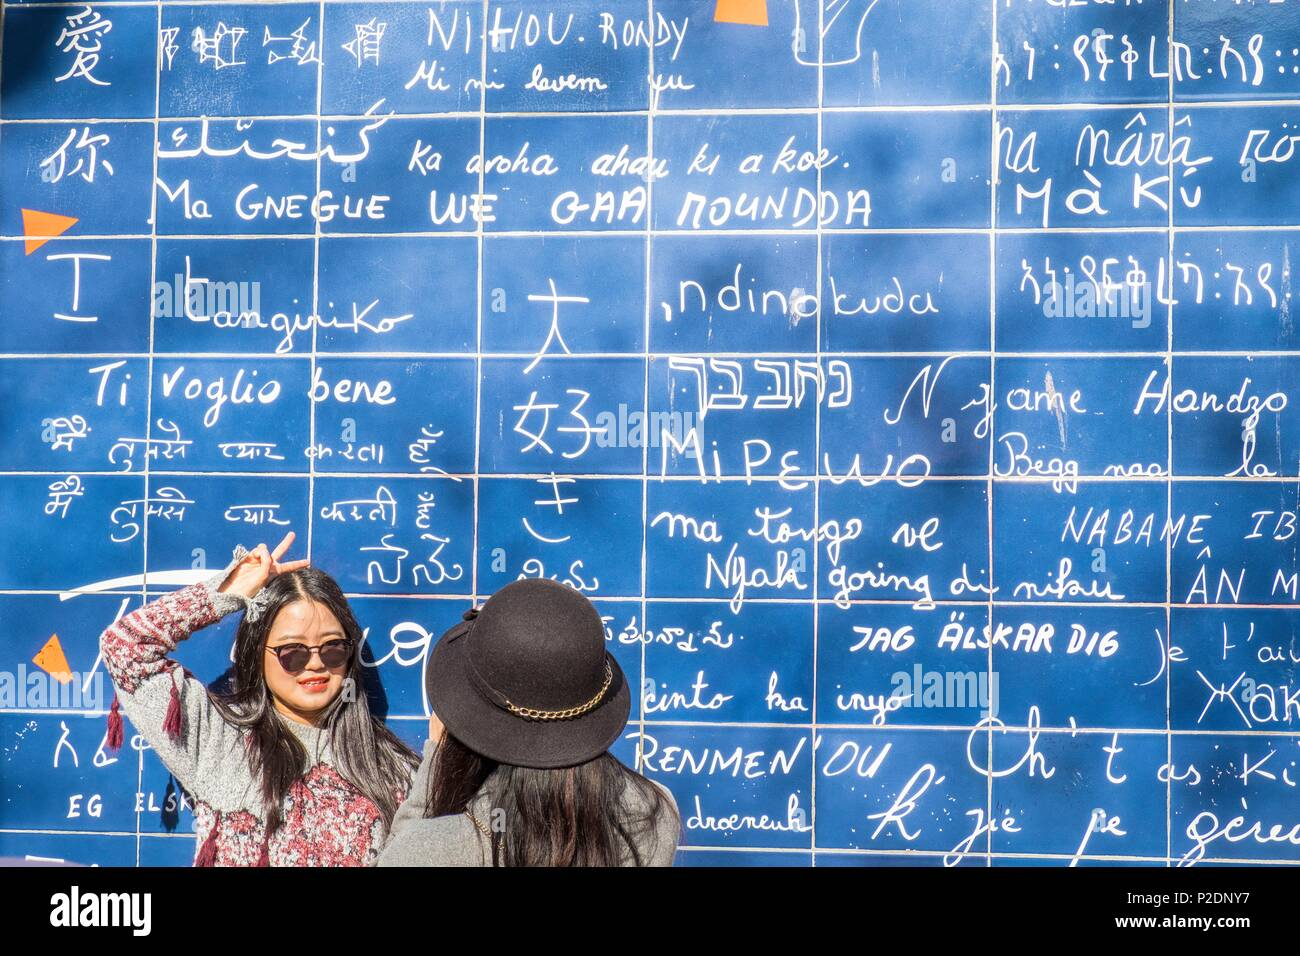 France, Paris, Place des Abbesses, square Jehan Rictus, the Wall of Je t'aime fresco of 40m2 realized by Frederic Baron and Claire Kito - Stock Image